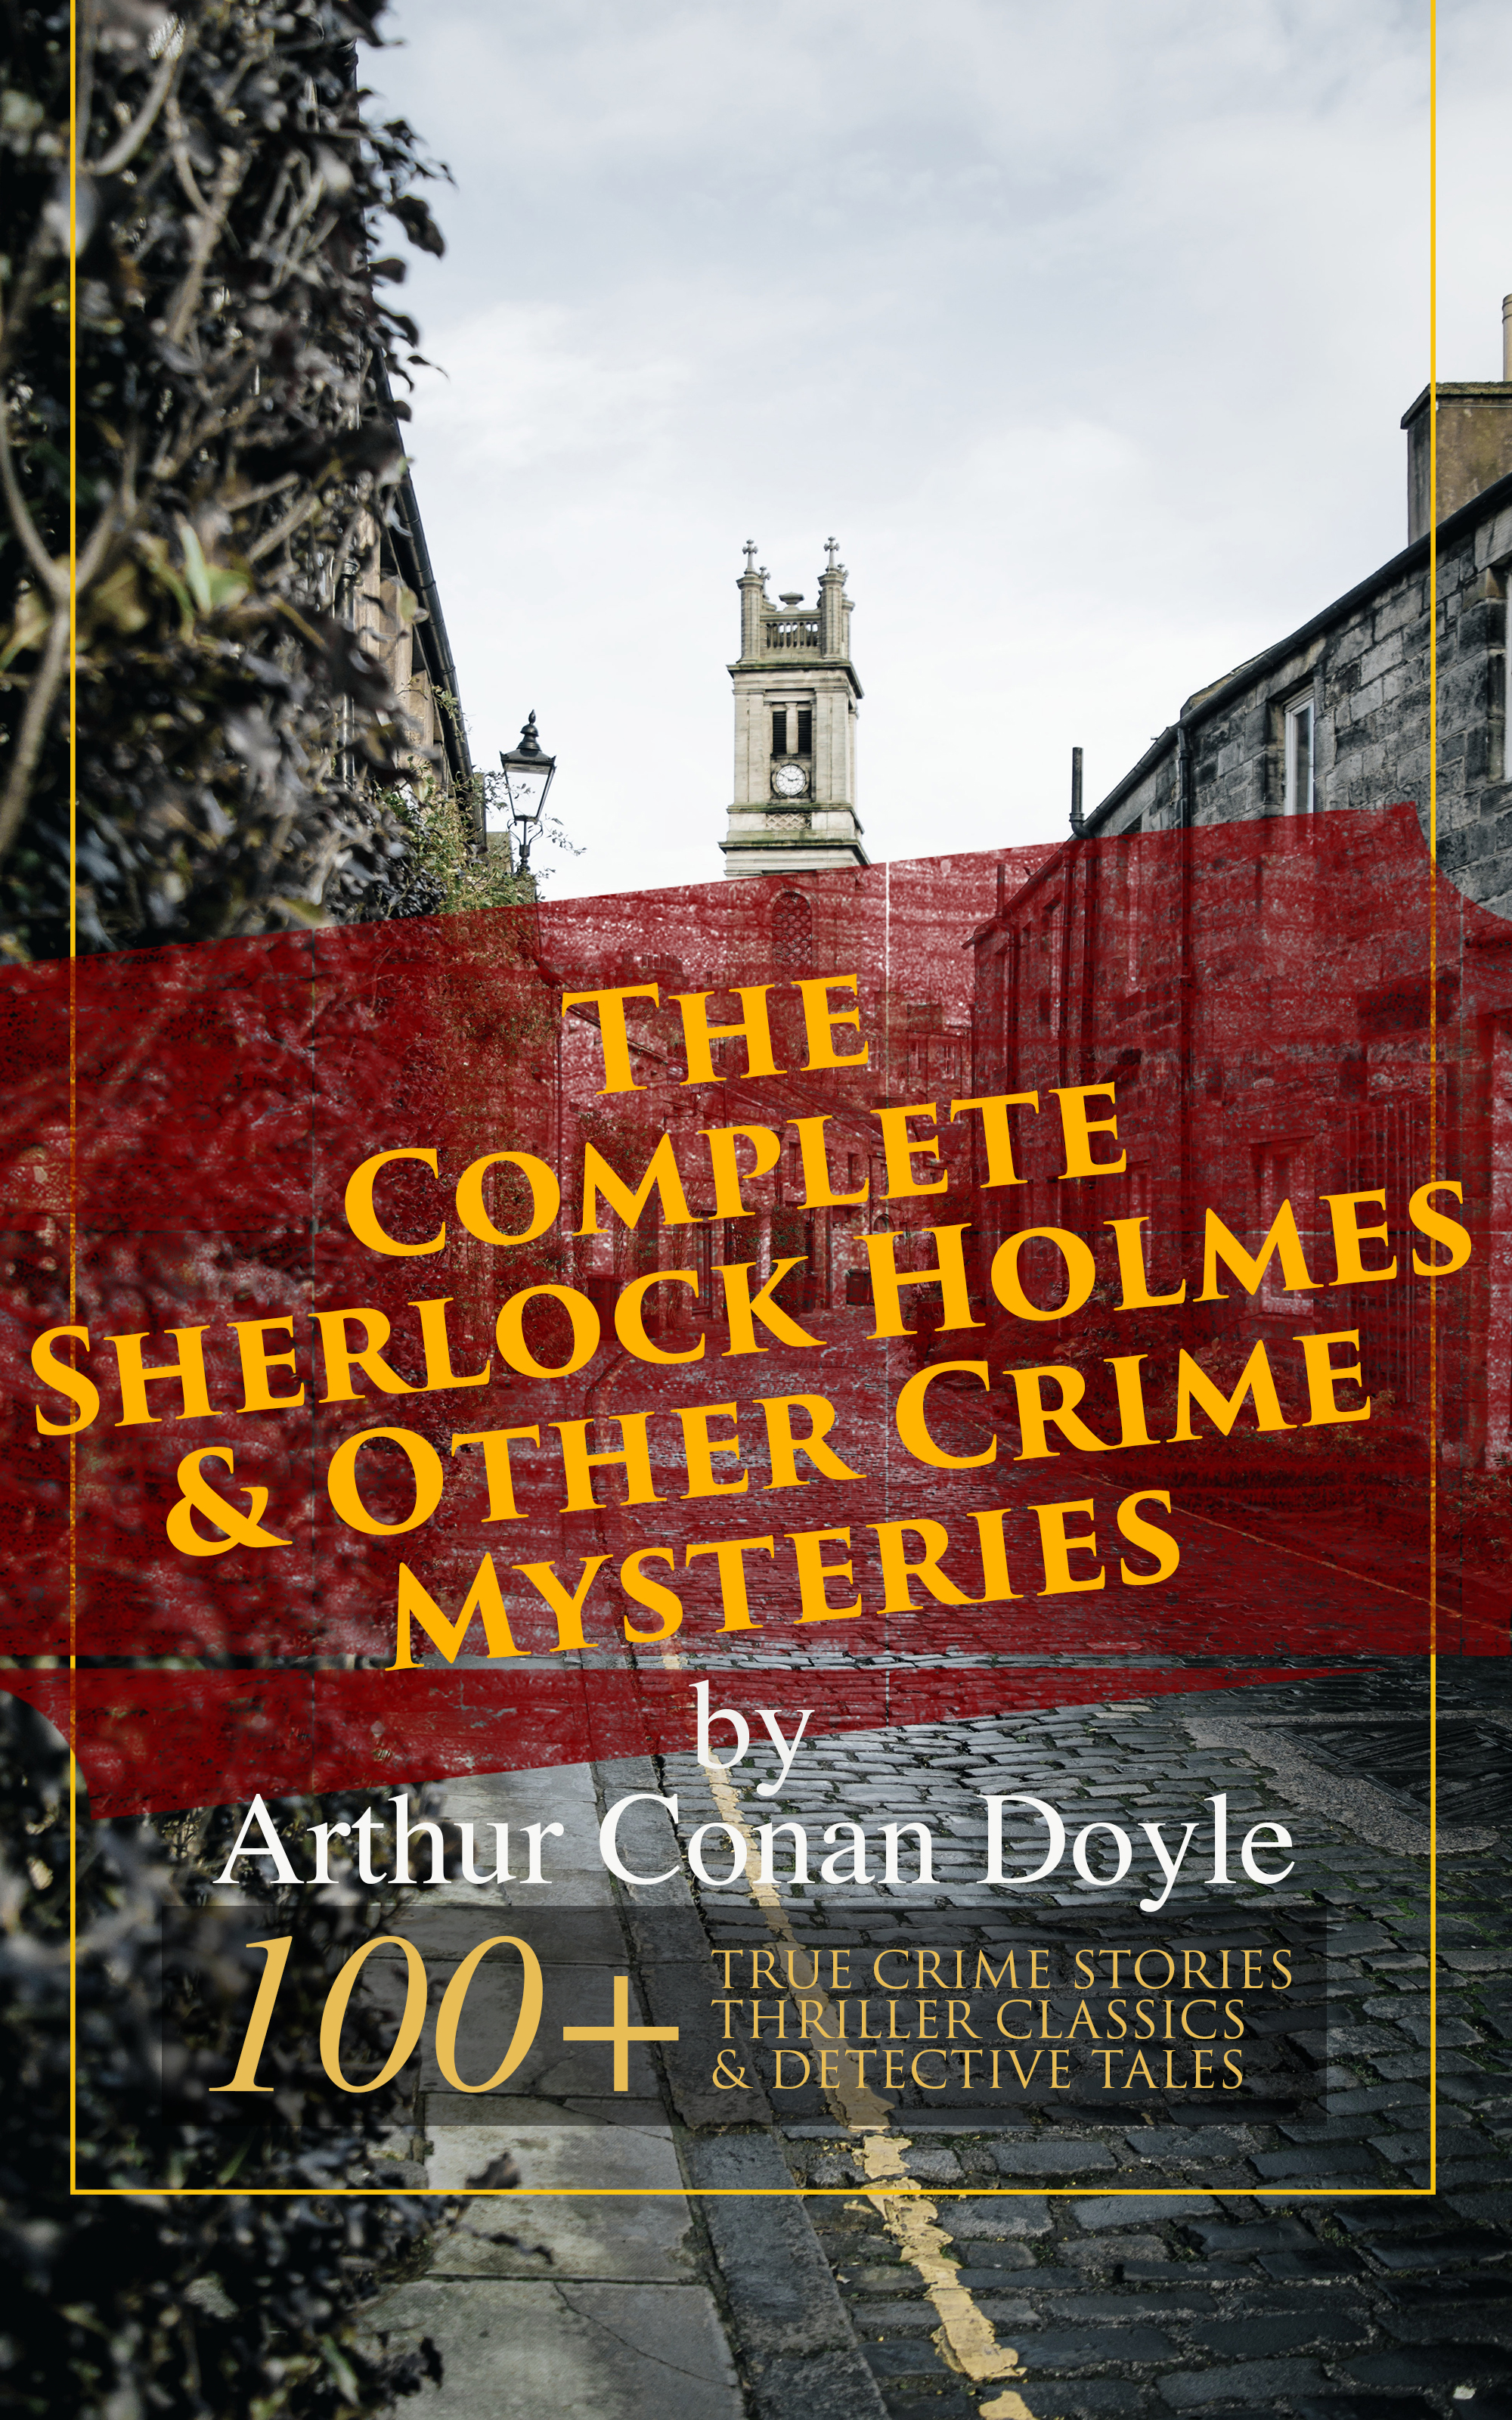 Arthur Conan Doyle The Complete Sherlock Holmes & Other Crime Mysteries by Arthur Conan Doyle: 100+ True Crime Stories, Thriller Classics & Detective Tales (Illustrated) цена и фото